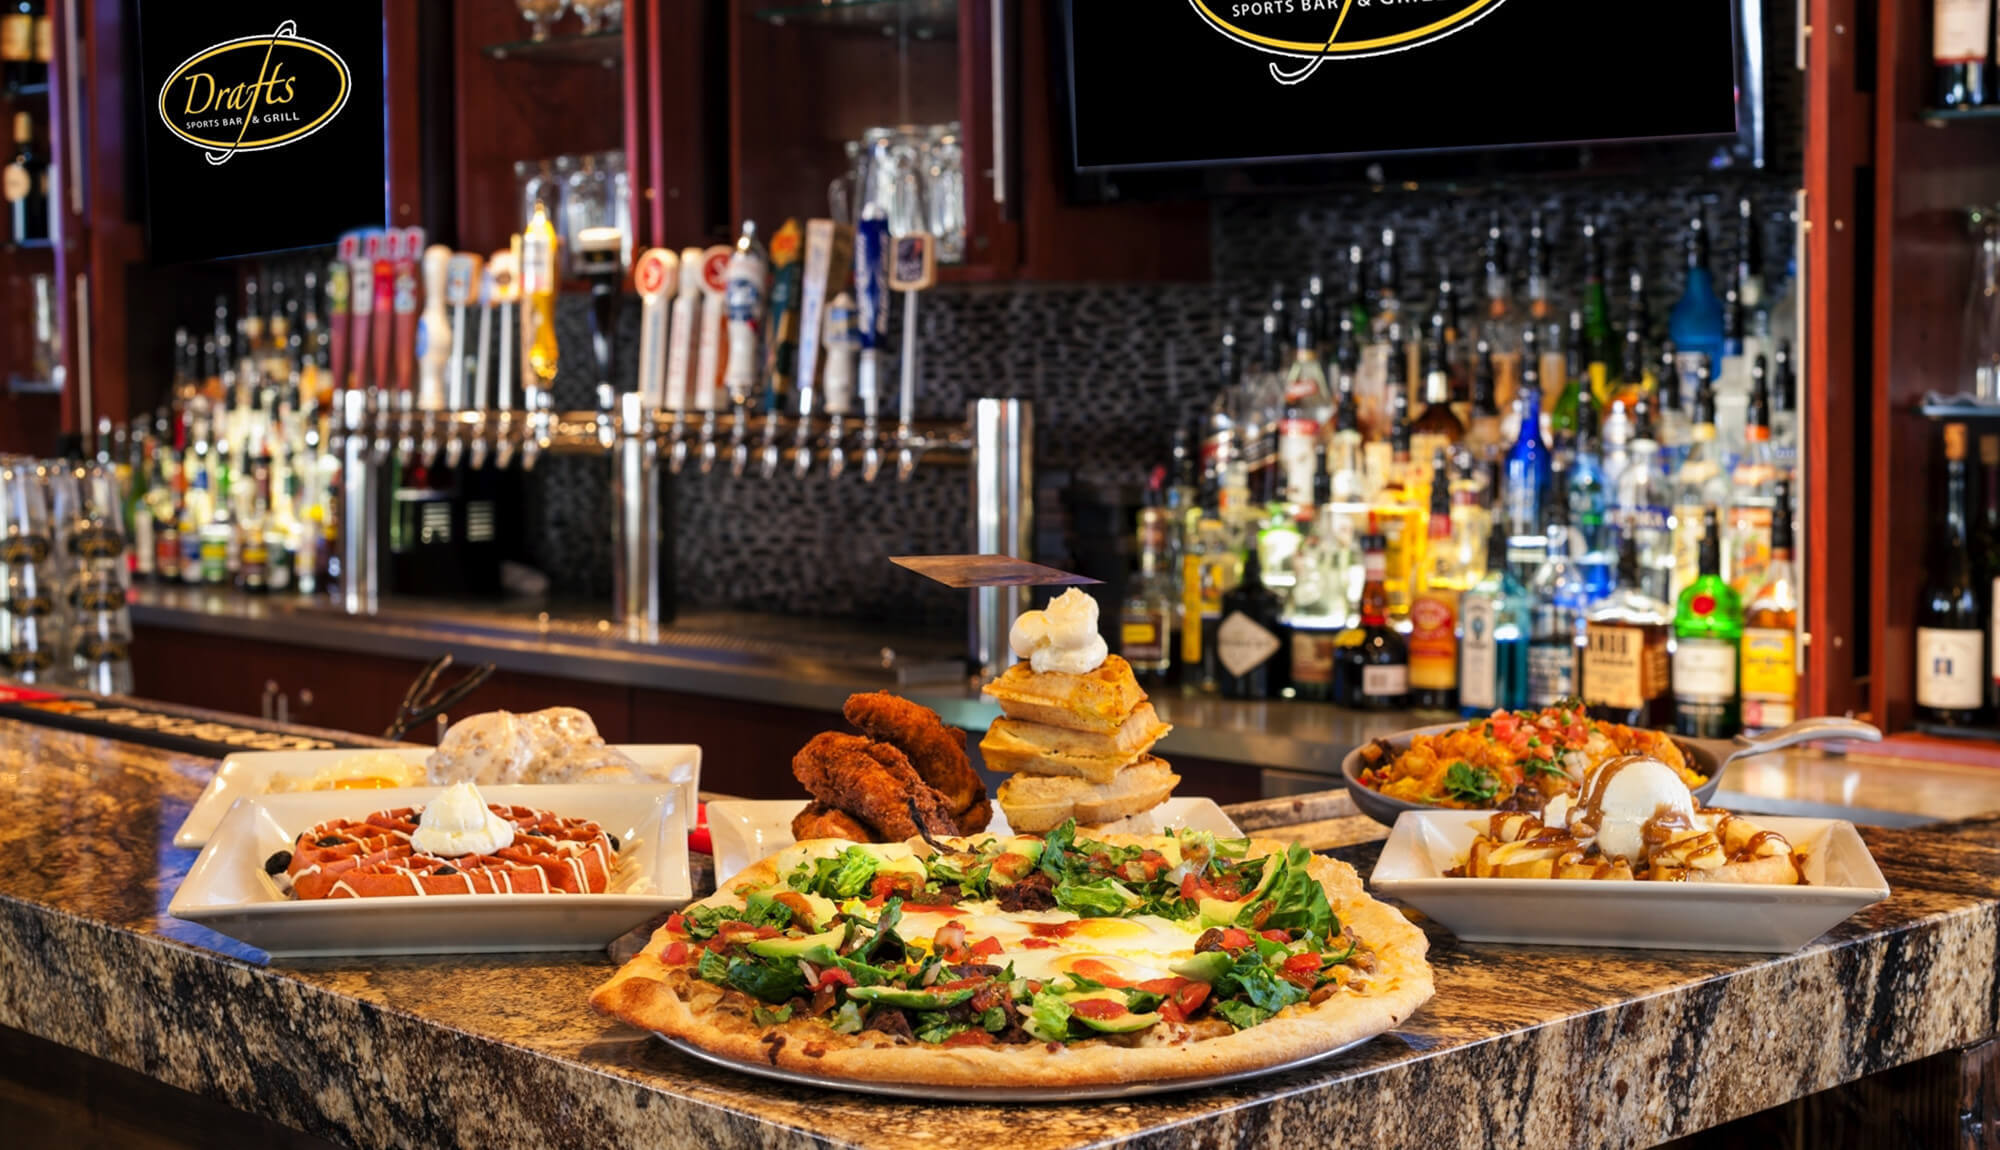 Pizza and dessert selections from Park City sports bar | Westgate Park City Resort & Spa